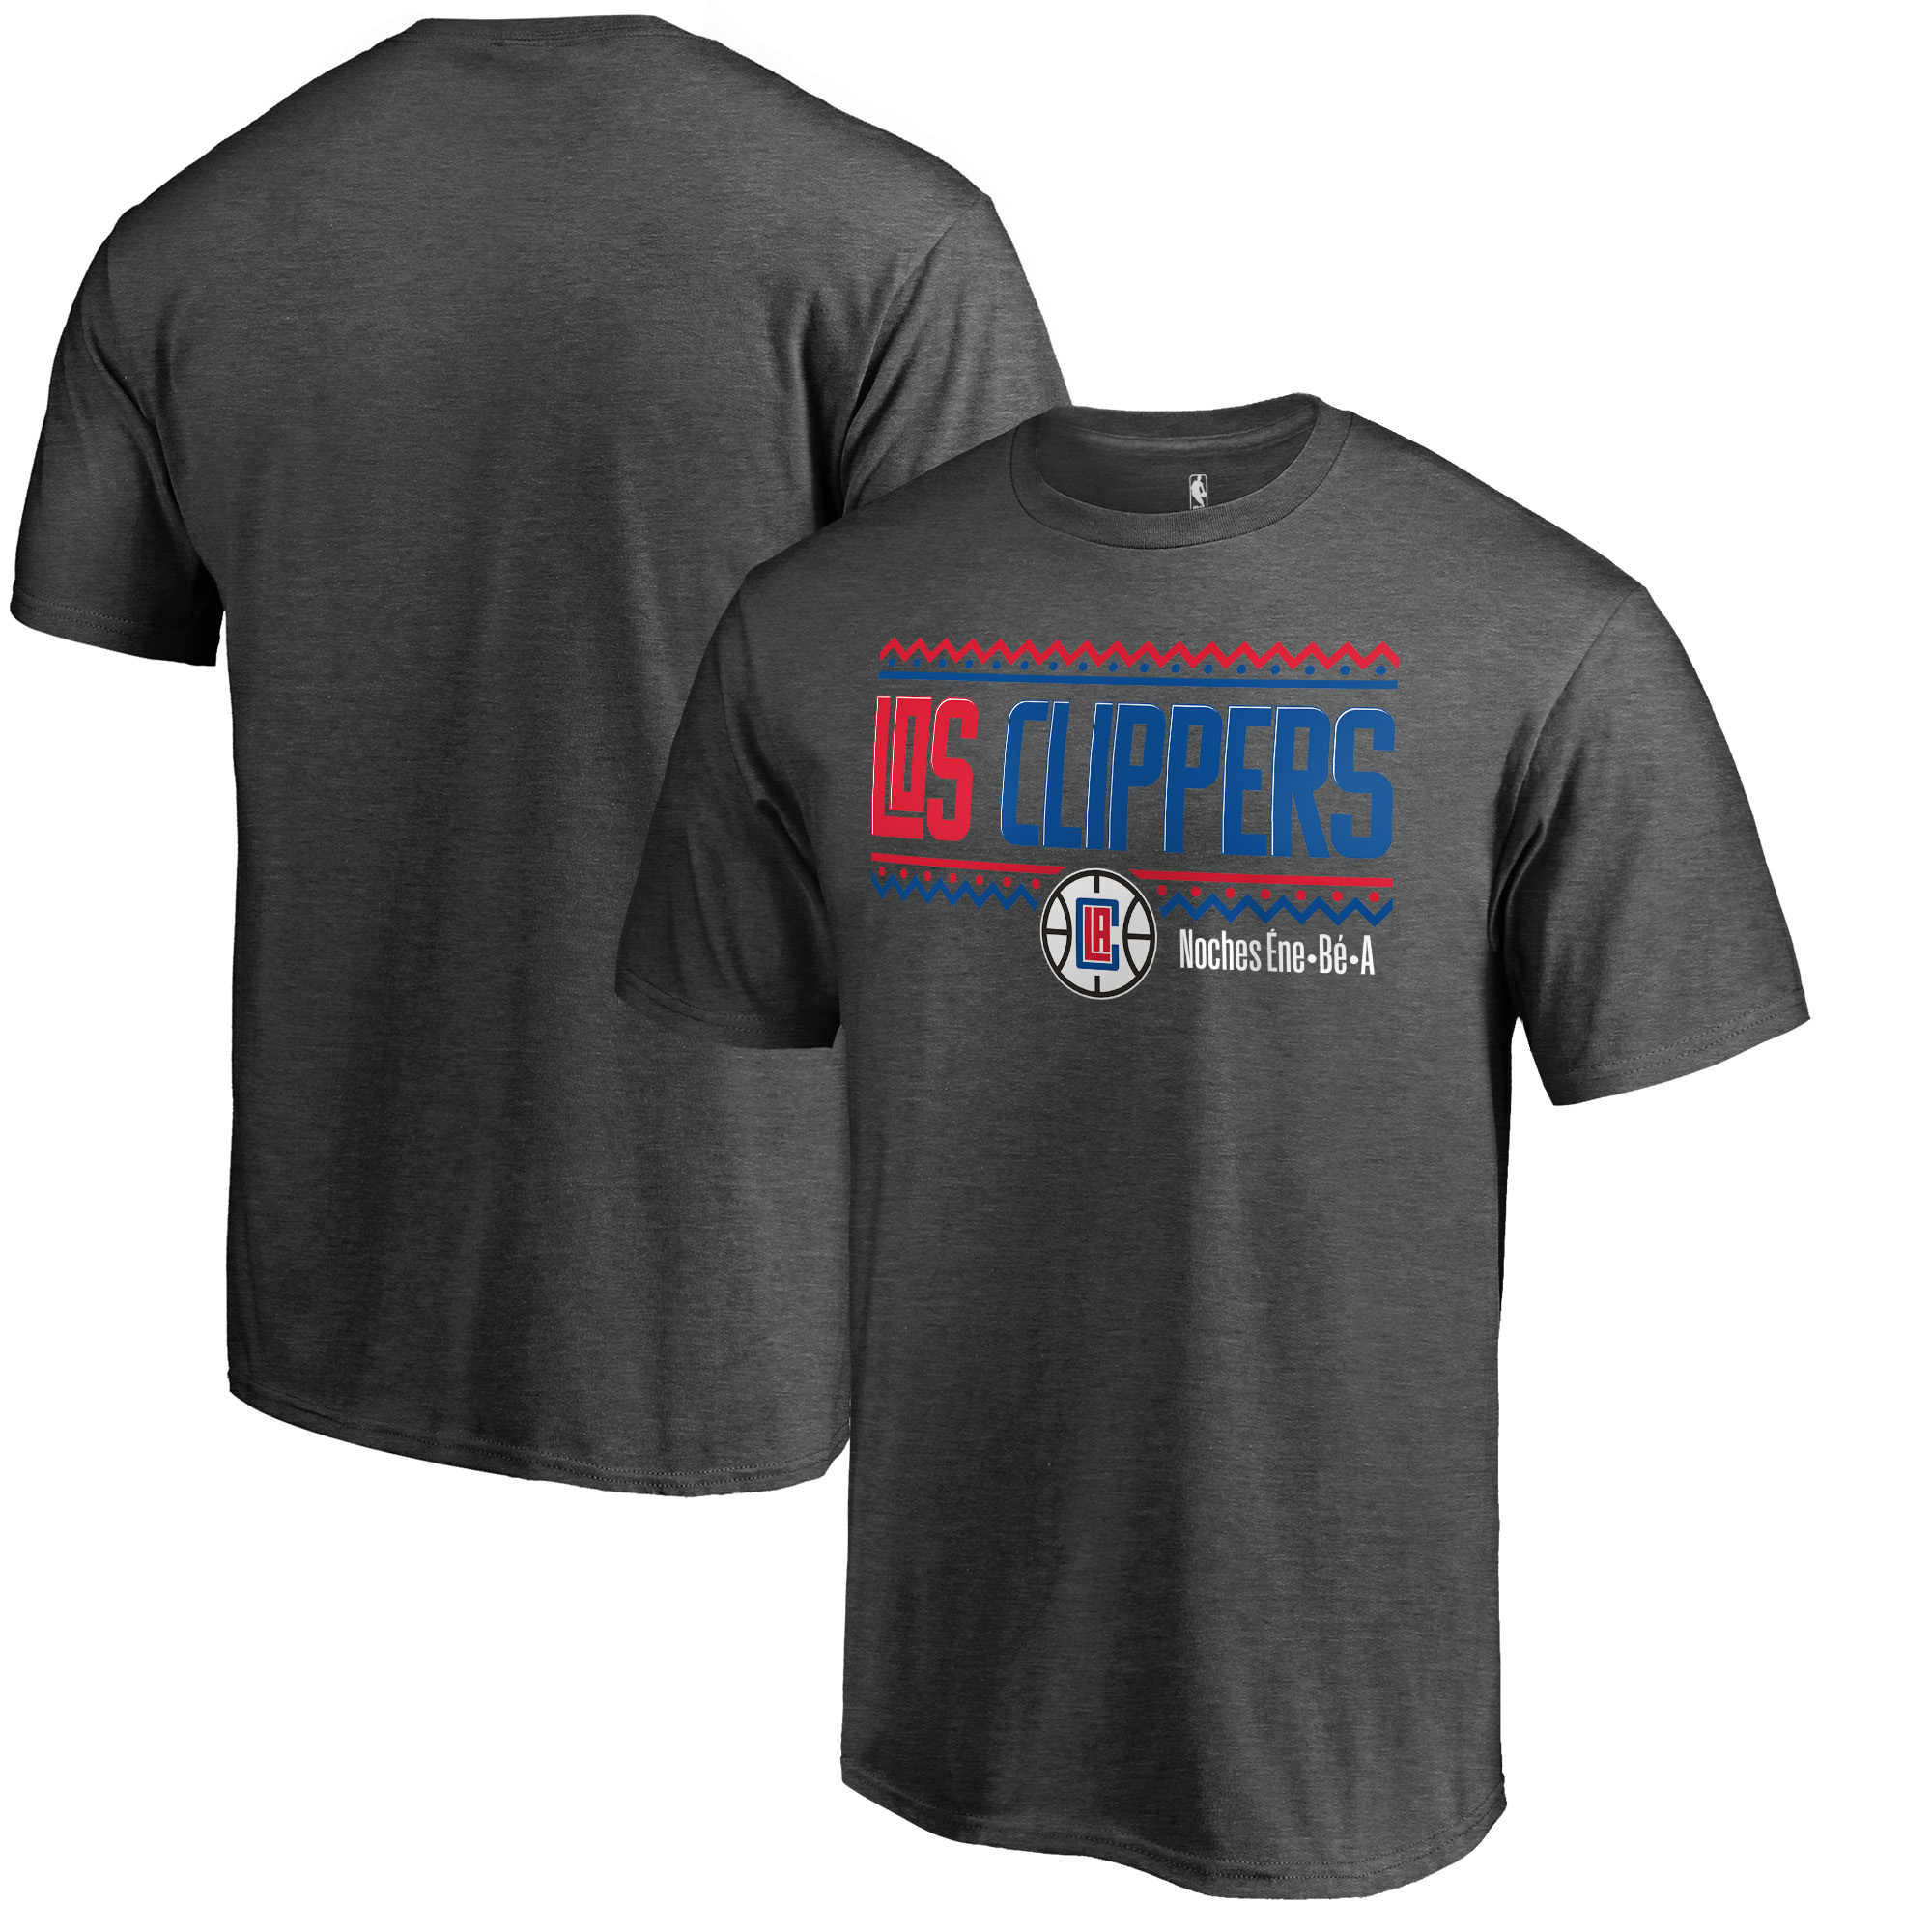 LA Clippers Fanatics Branded Noches Ene-Be-A Wordmark T-Shirt - Heather Gray